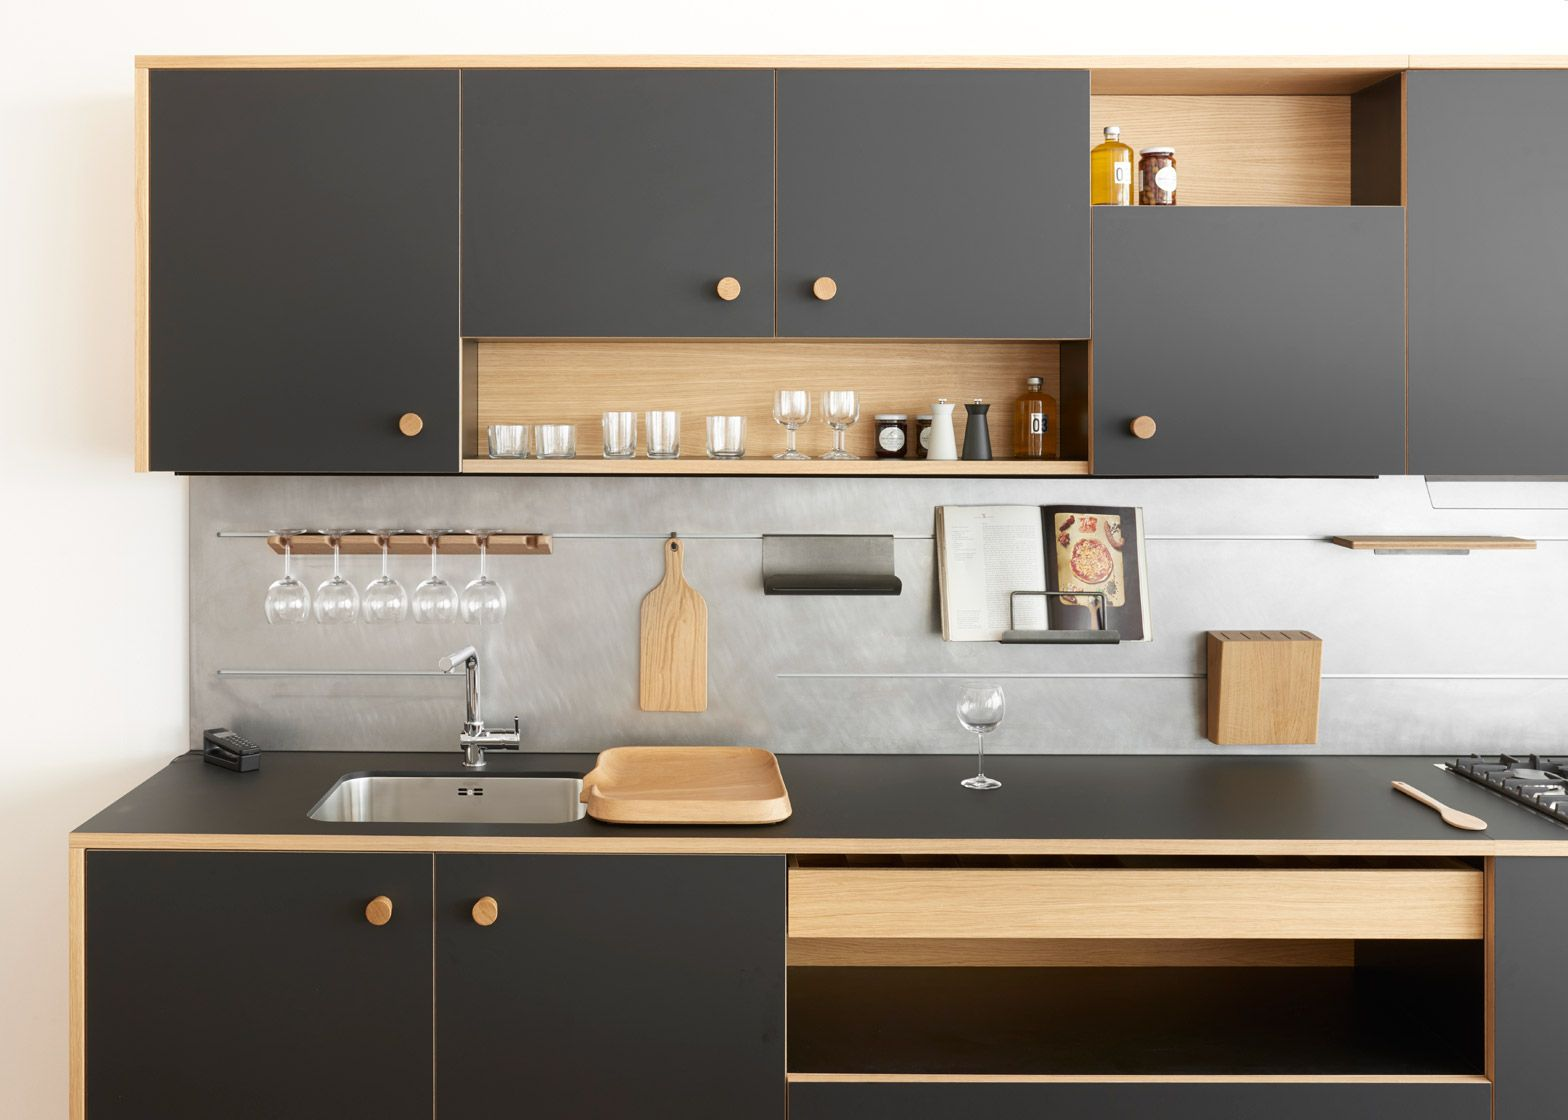 Kitchen Design Companies Delectable Jasper Morrison Reveals First Kitchen Design For Schiffini Inspiration